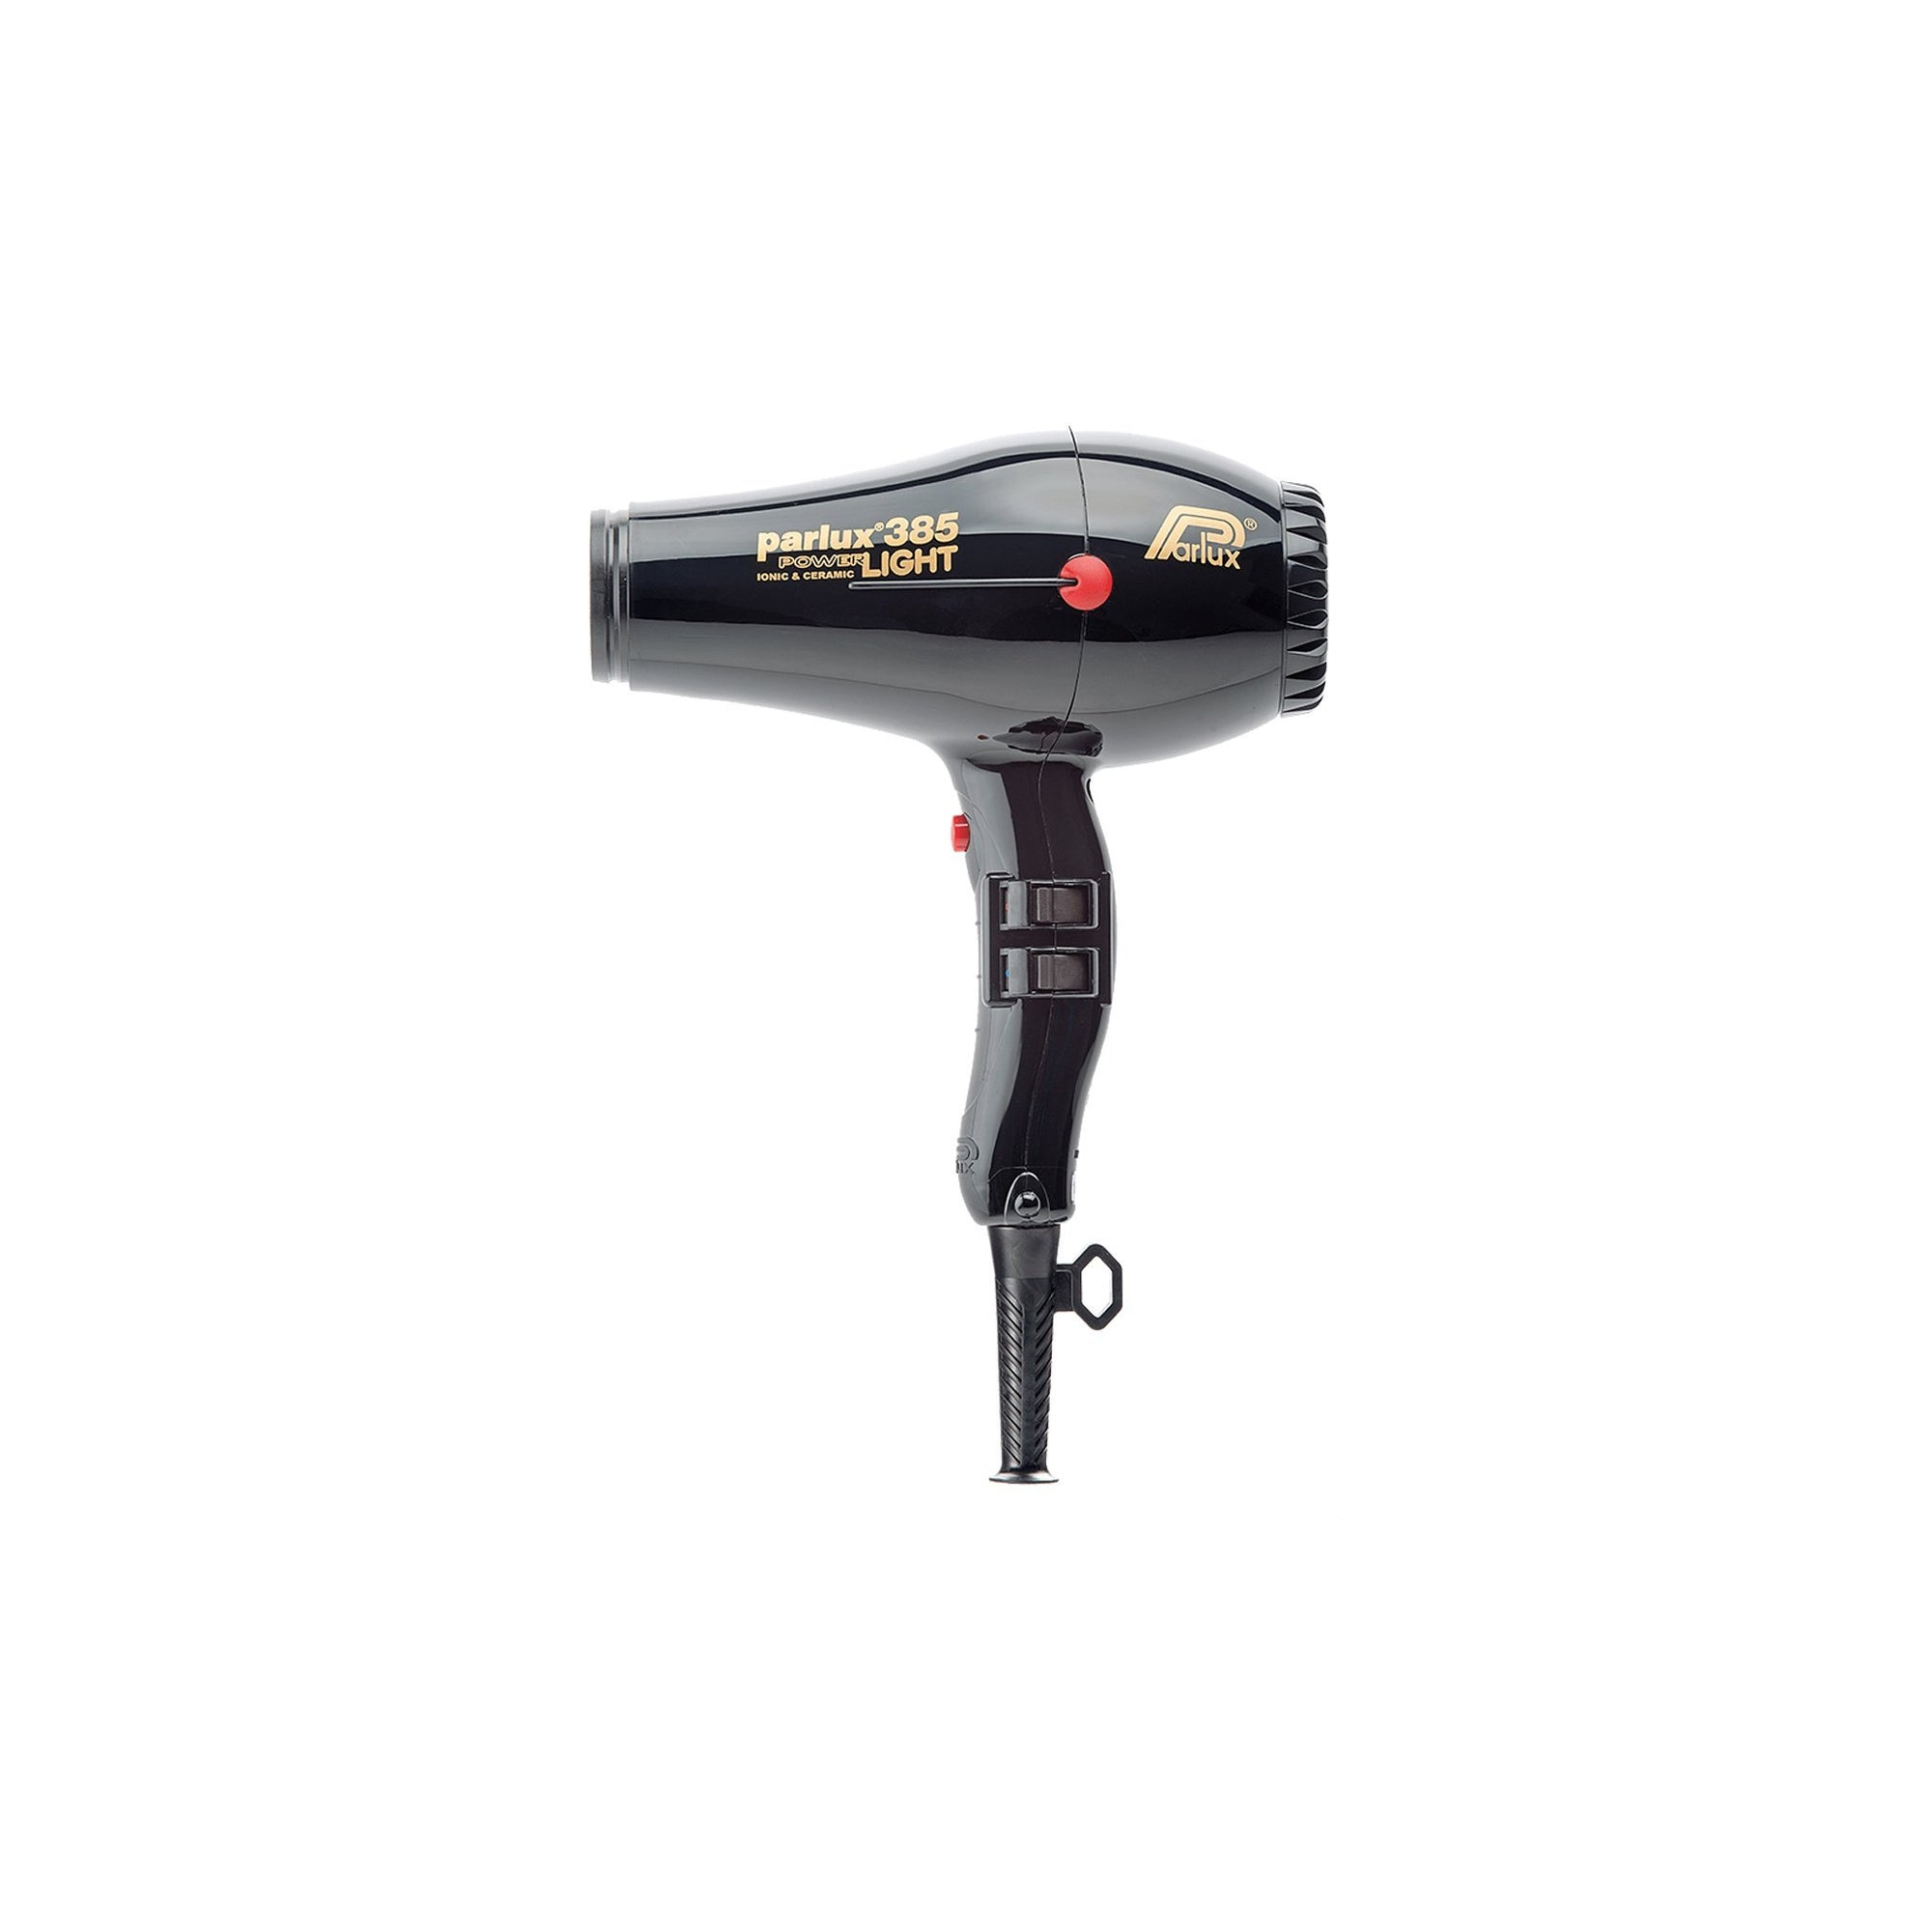 Parlux 385 Power Light Black